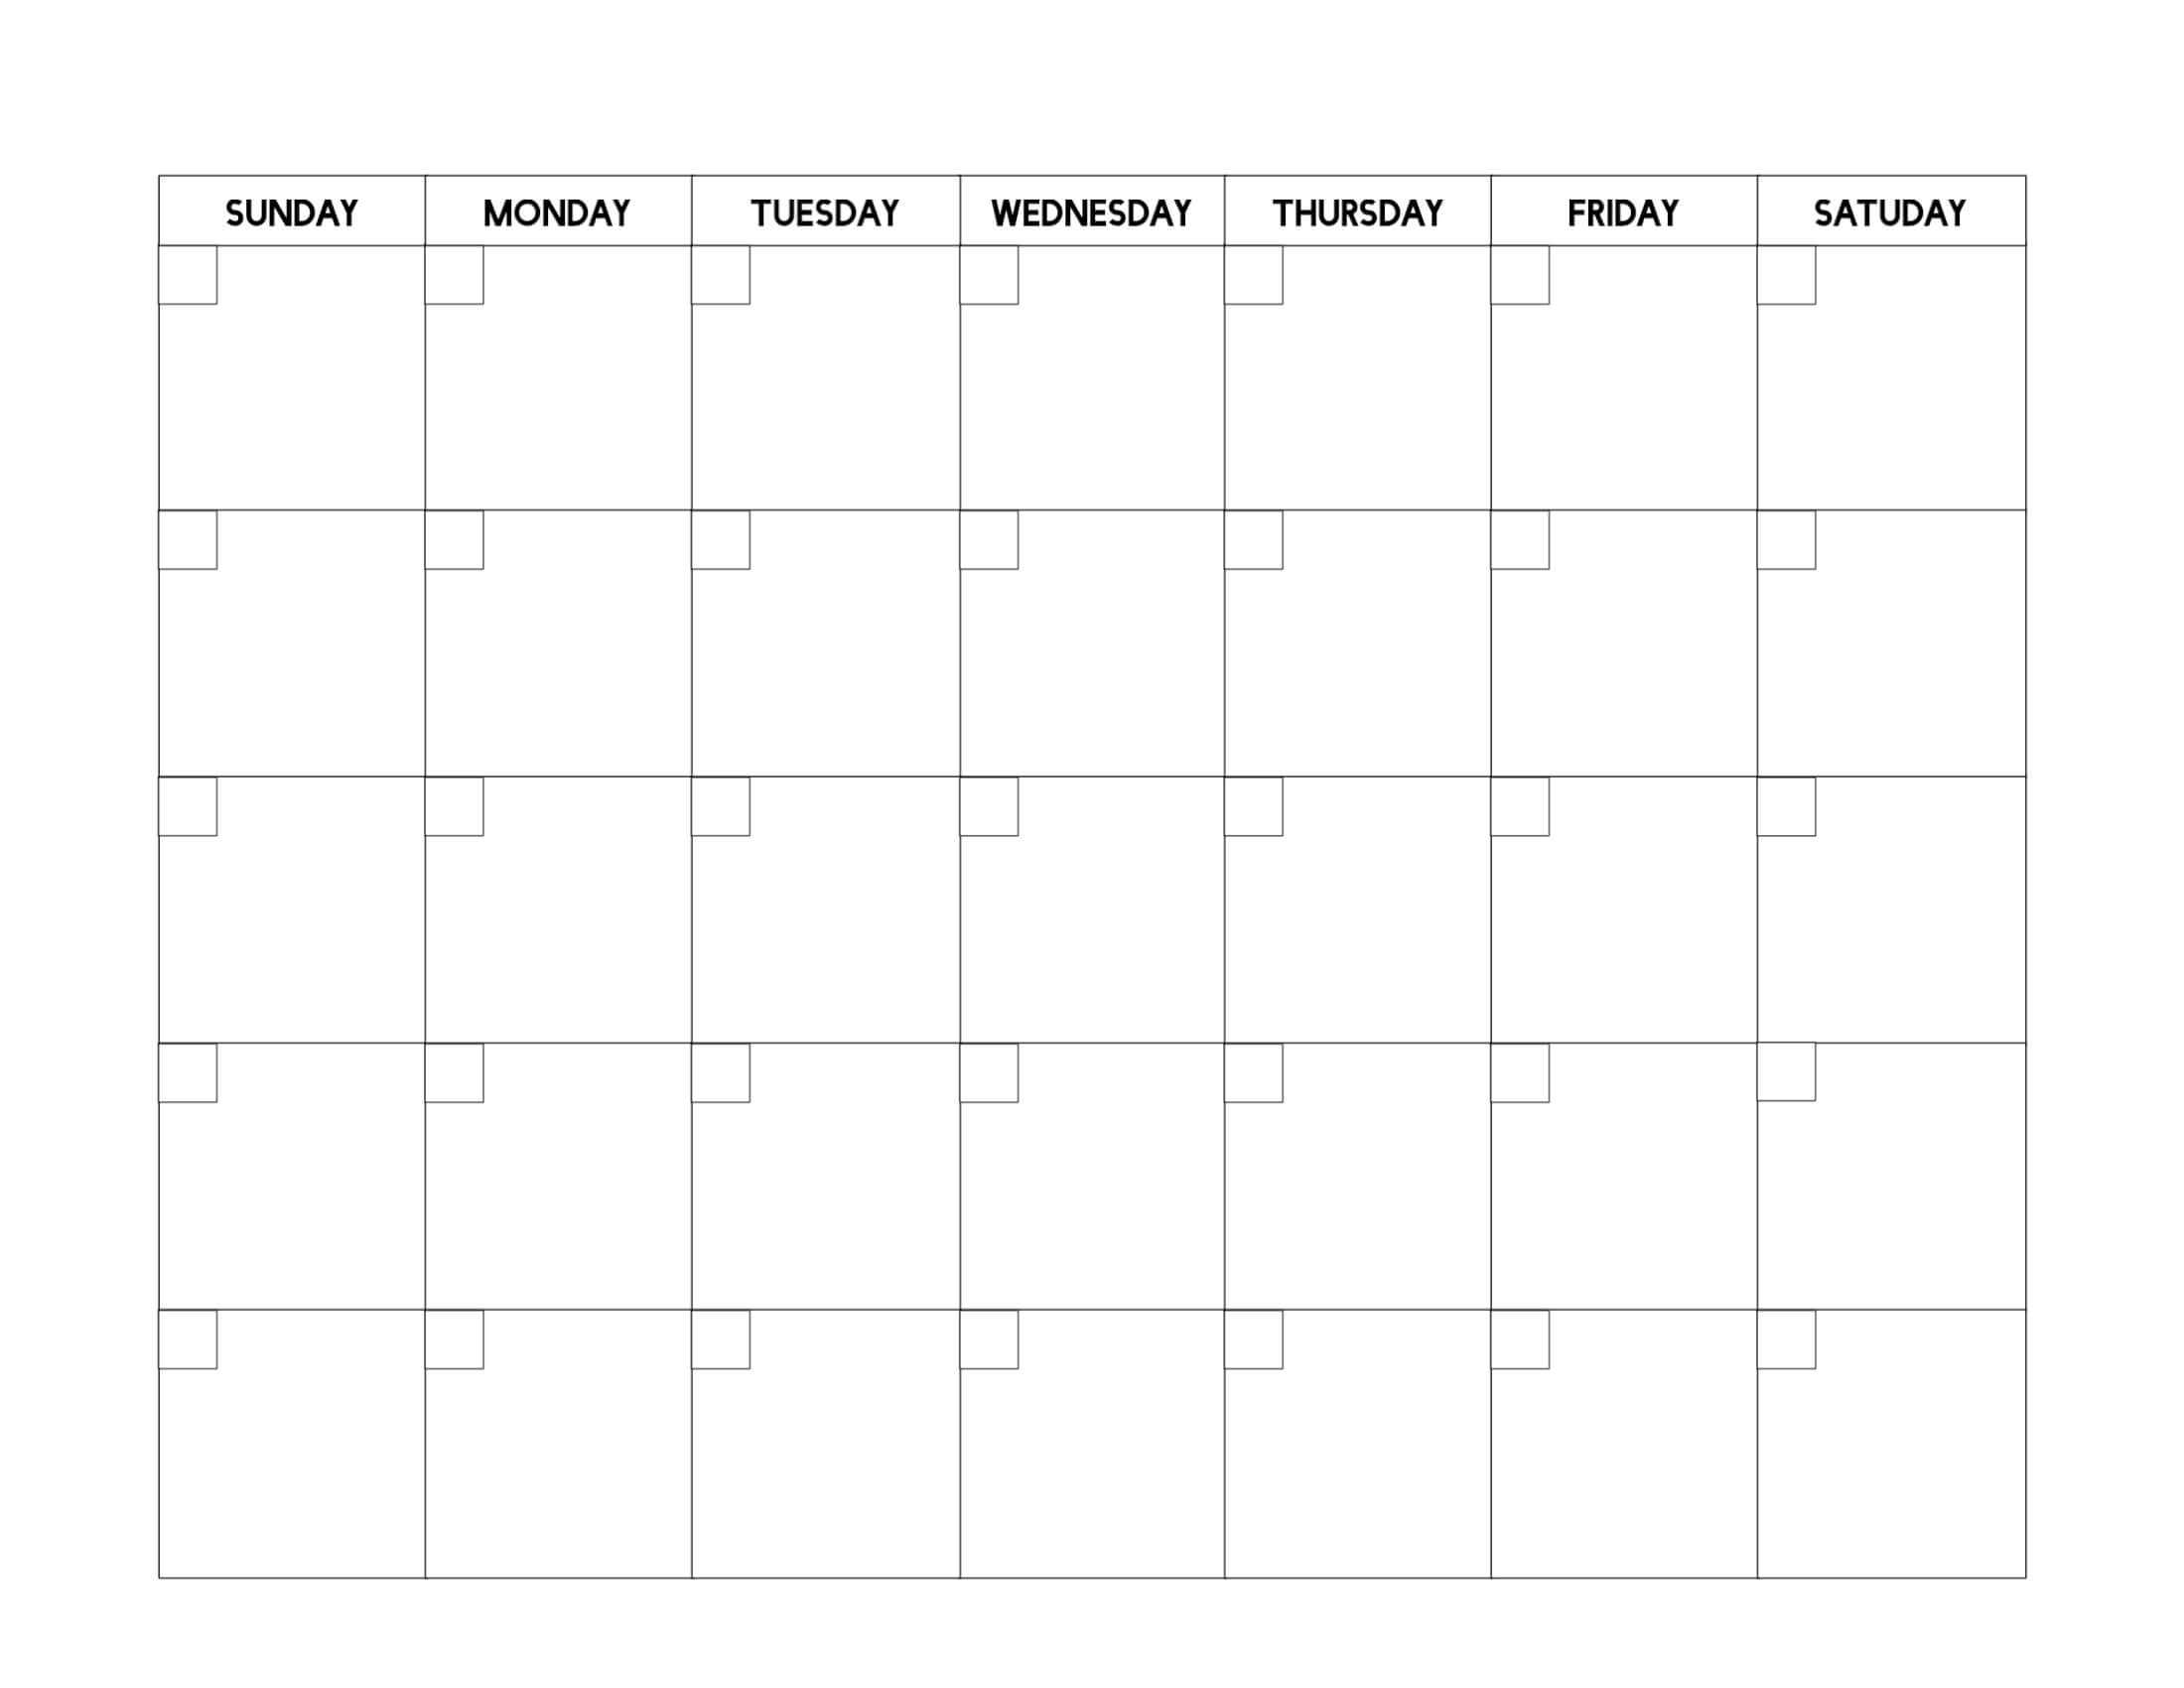 Free Printable Blank Calendar Template - Paper Trail Design With Regard To Full Page Blank Calendar Template